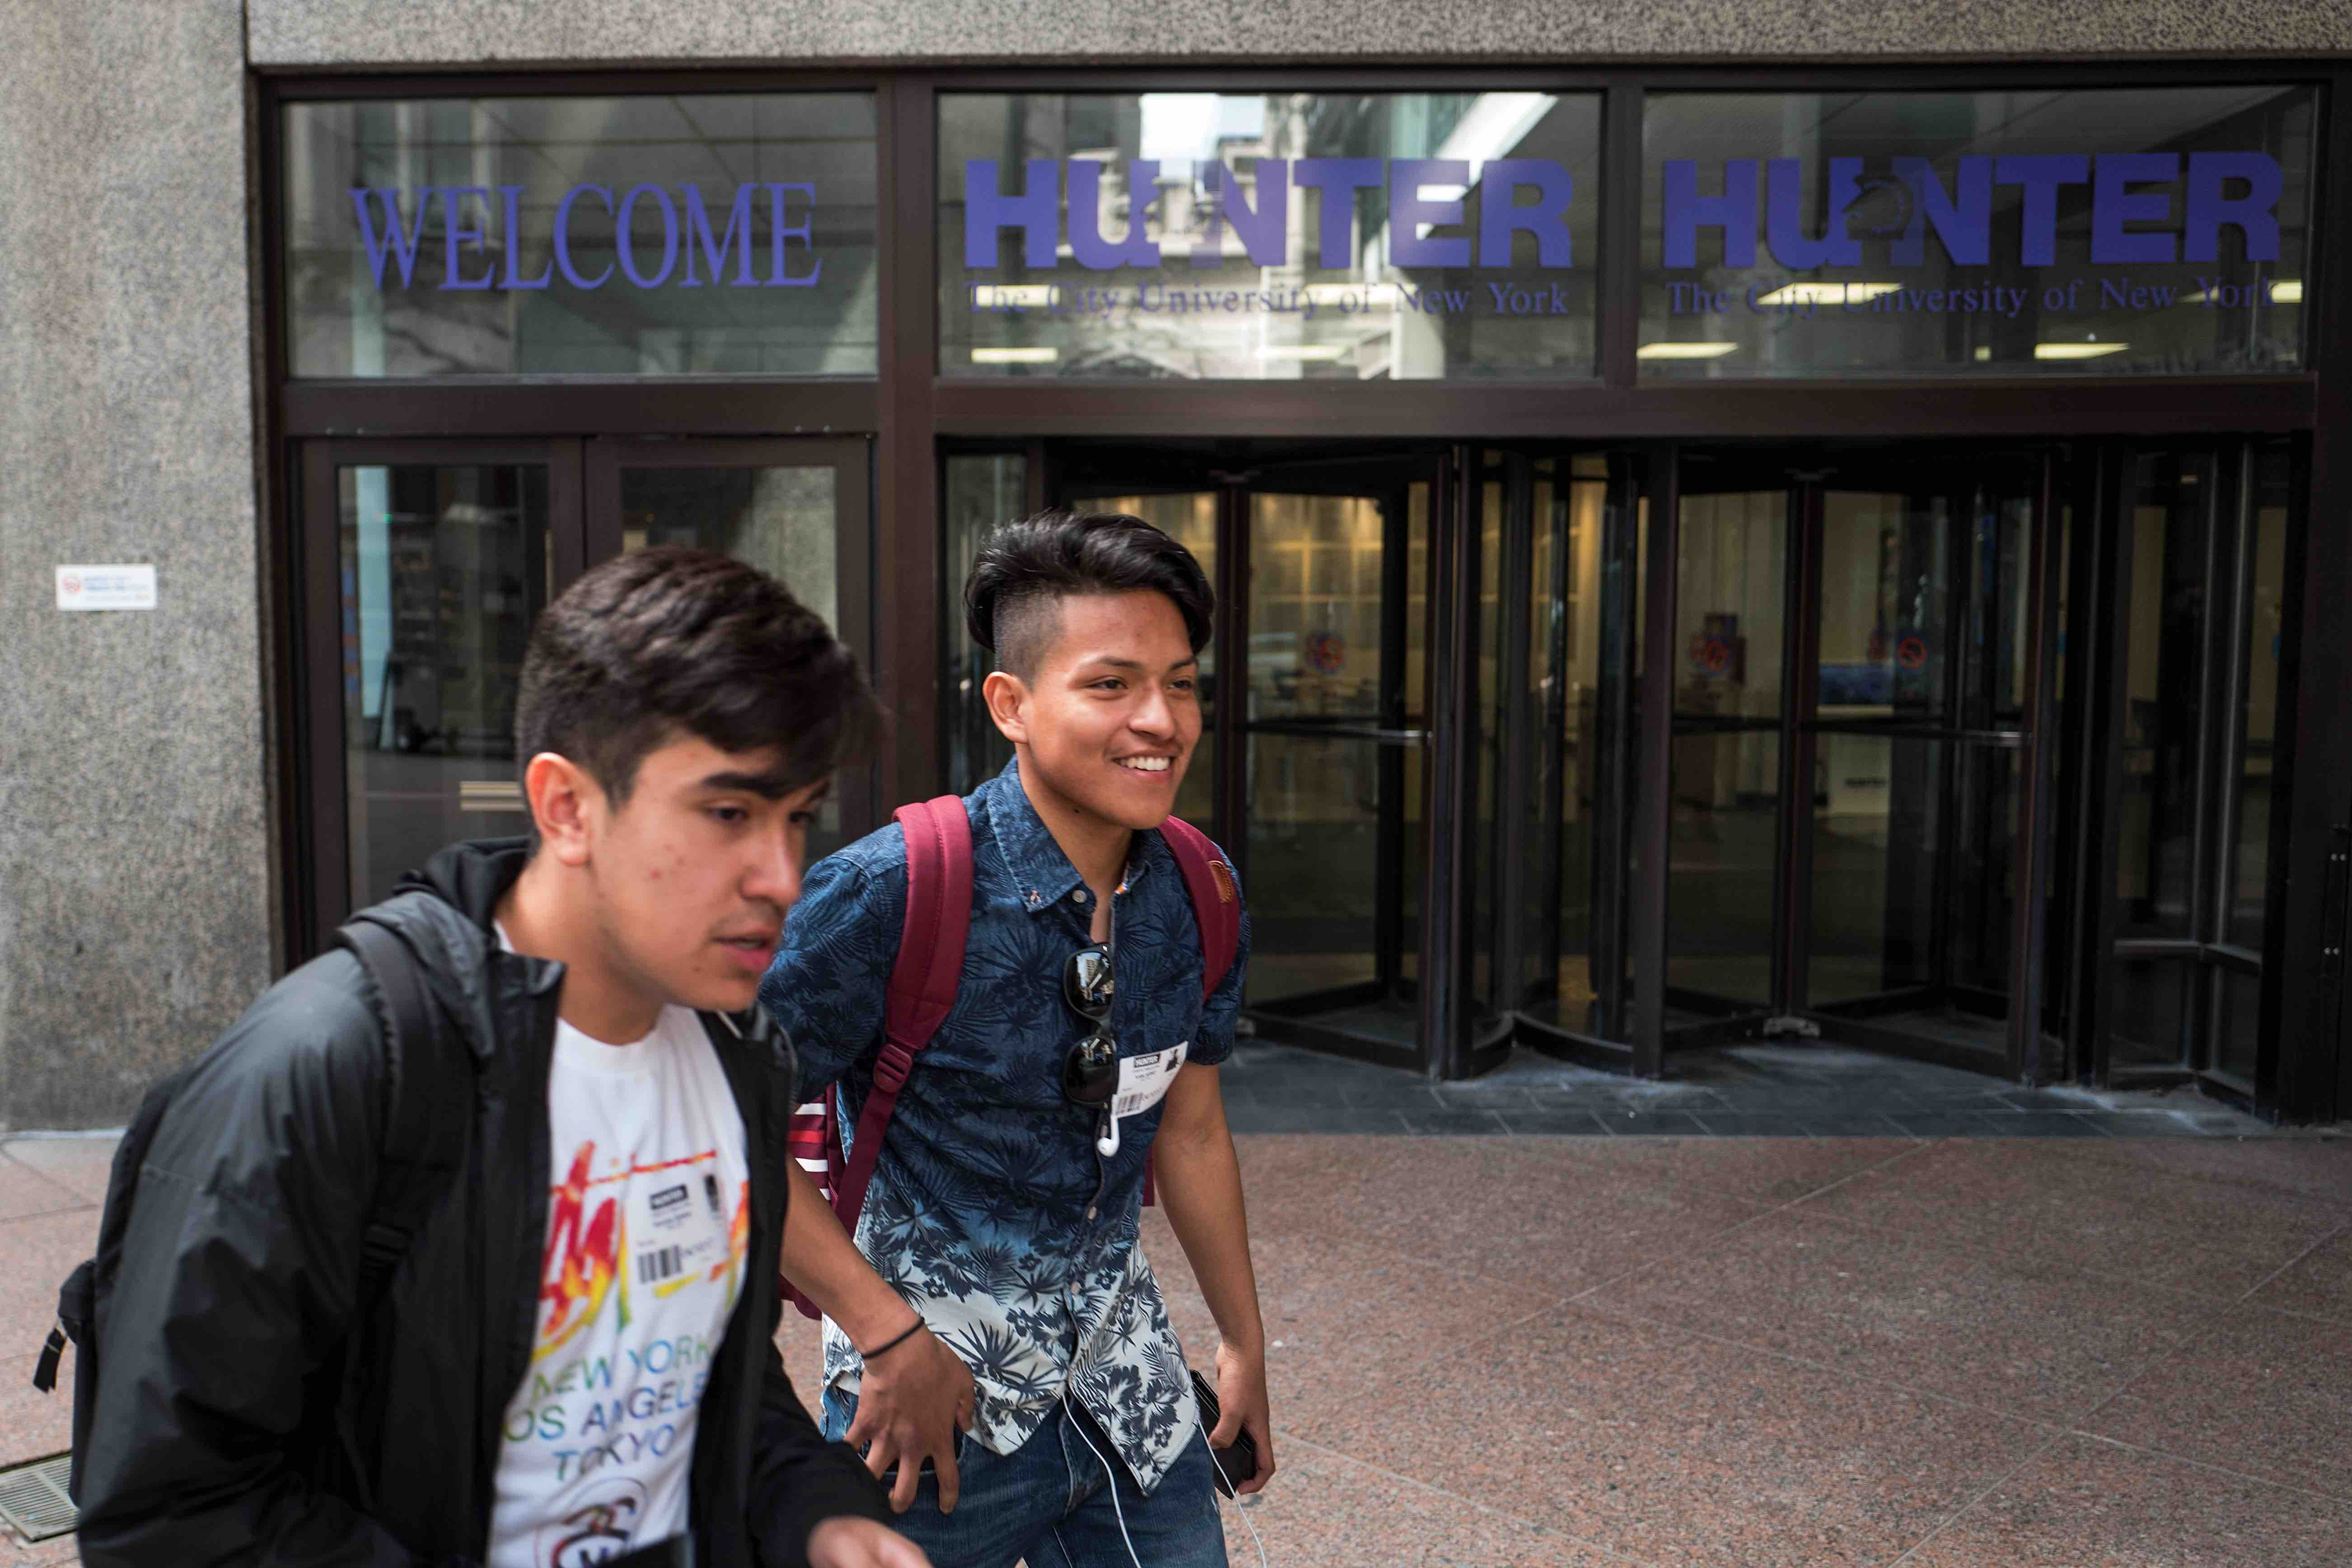 Undocumented Students Can Receive In-State Tuition in These 20 States